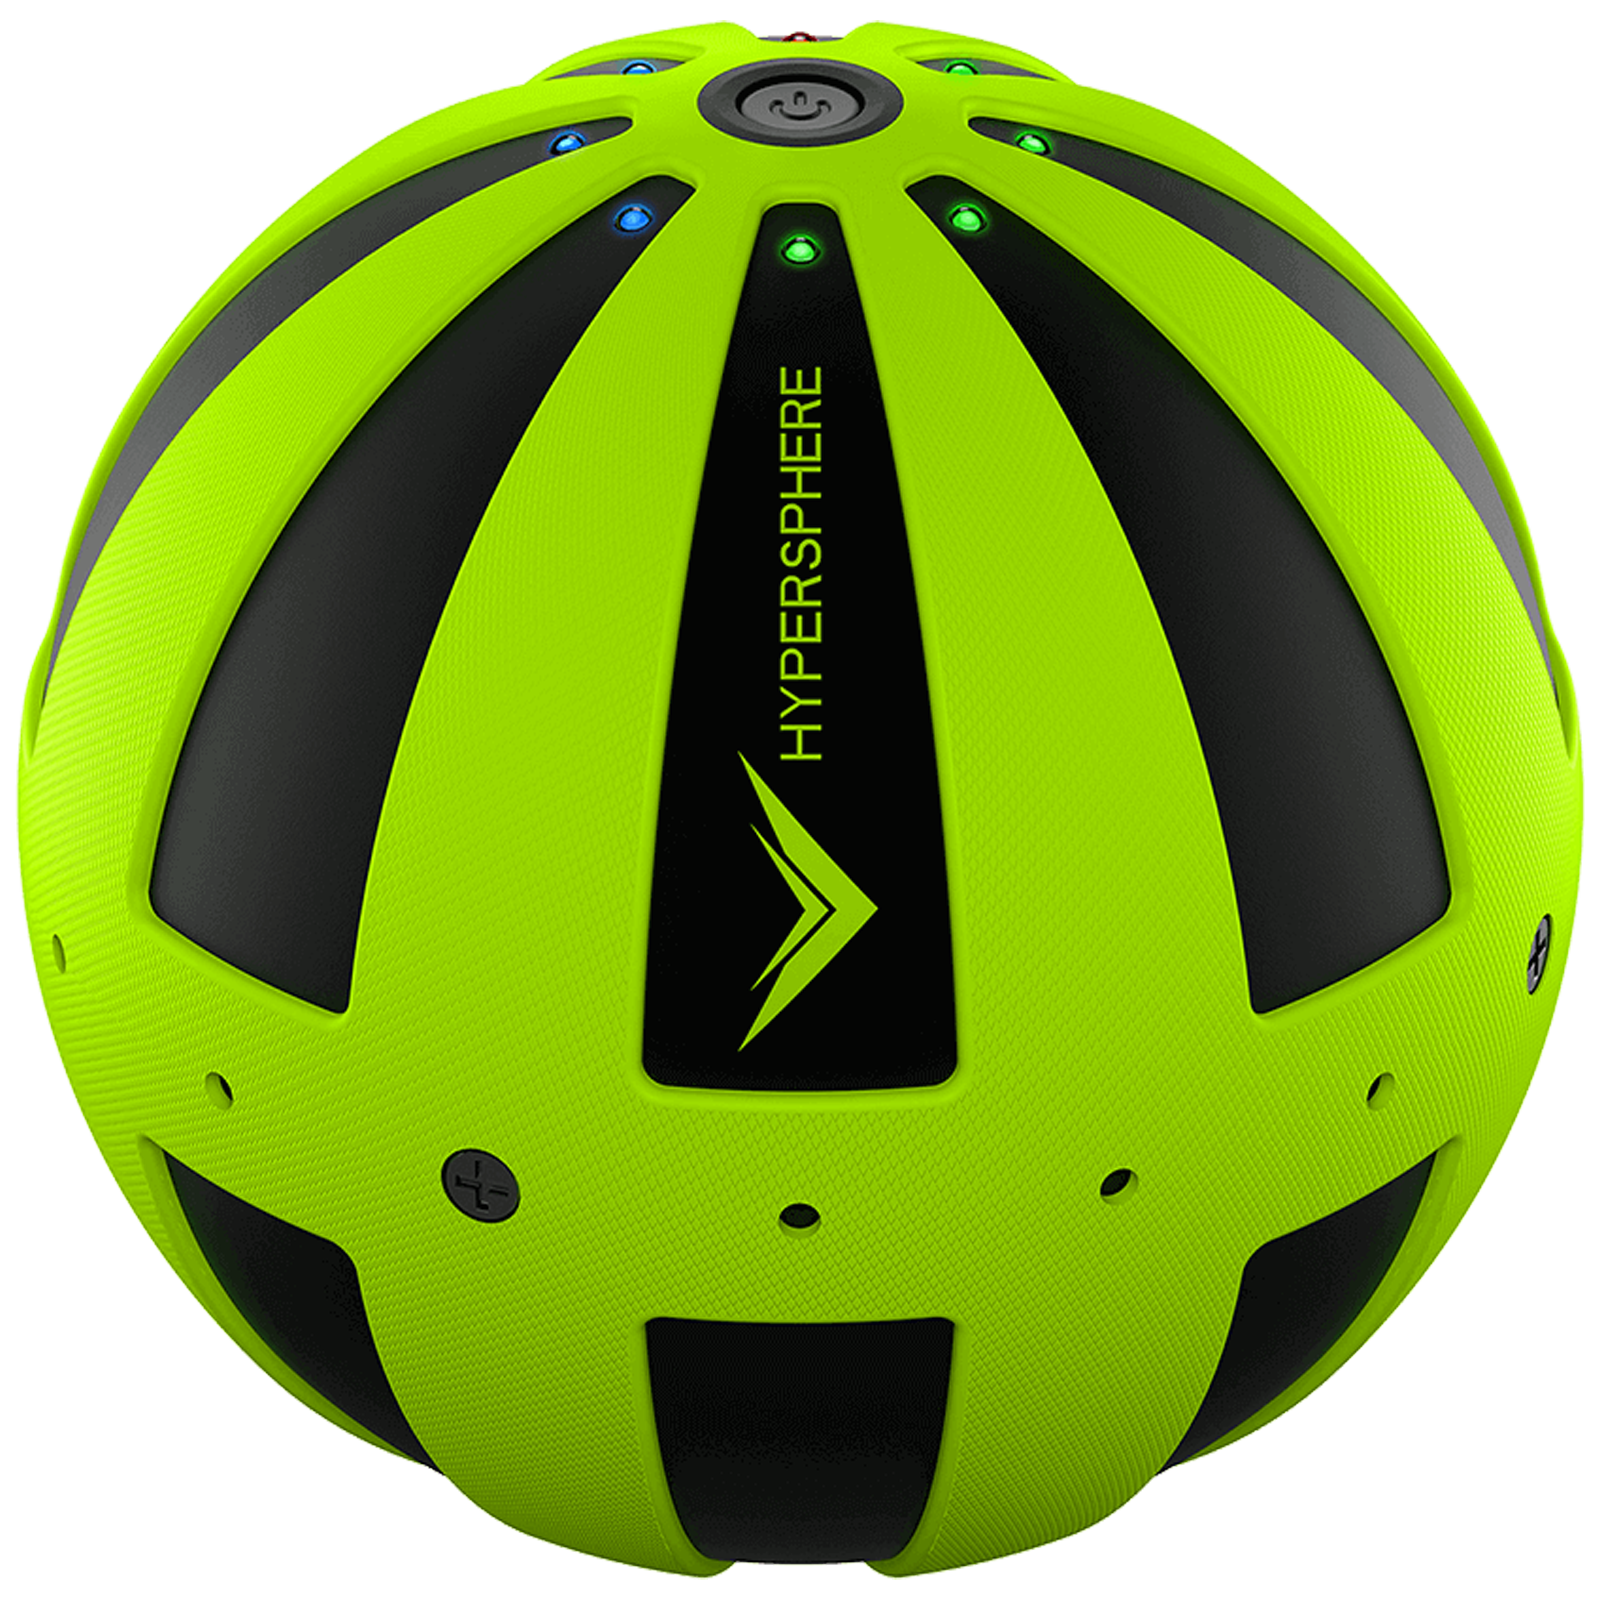 Hyperice Hypersphere Arm, Back, Feet, Shoulder Massager (Vibration Technology, Three Vibration Frequency Levels, 101069, Neon)_1